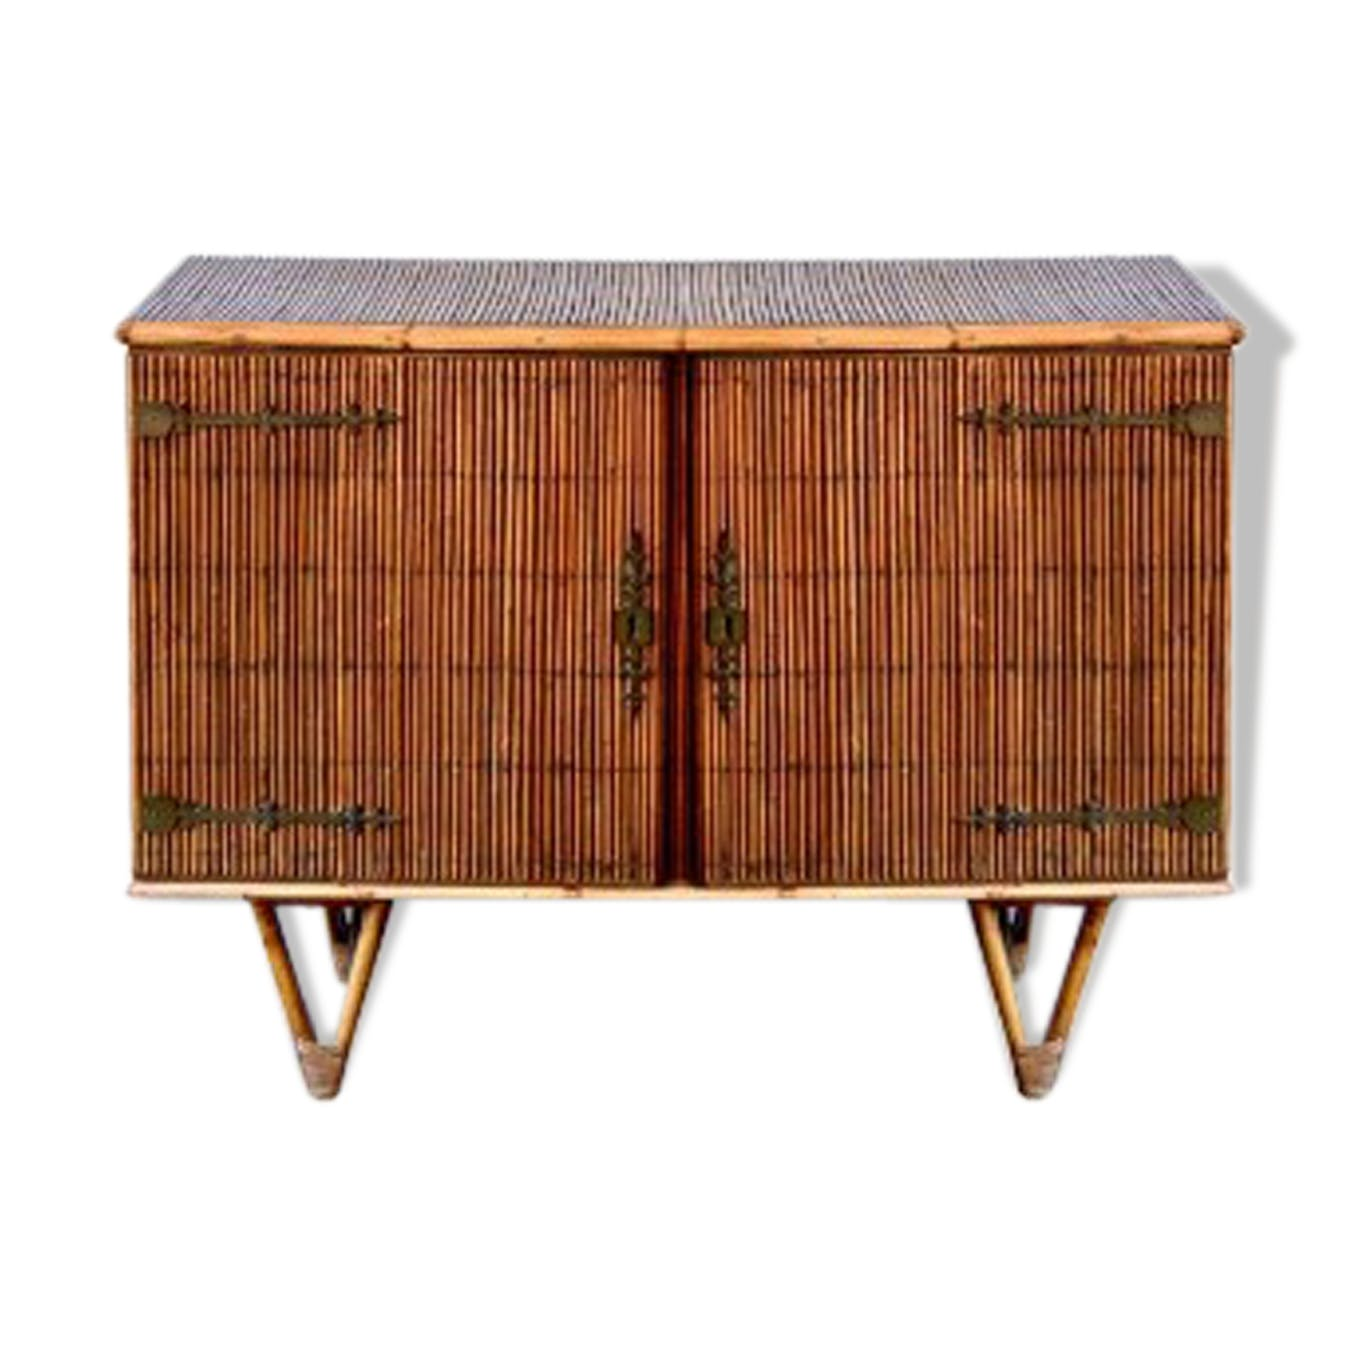 Qu Est Ce Qu Une Enfilade enfilade buffet rotin vintage - rattan and wicker - wooden